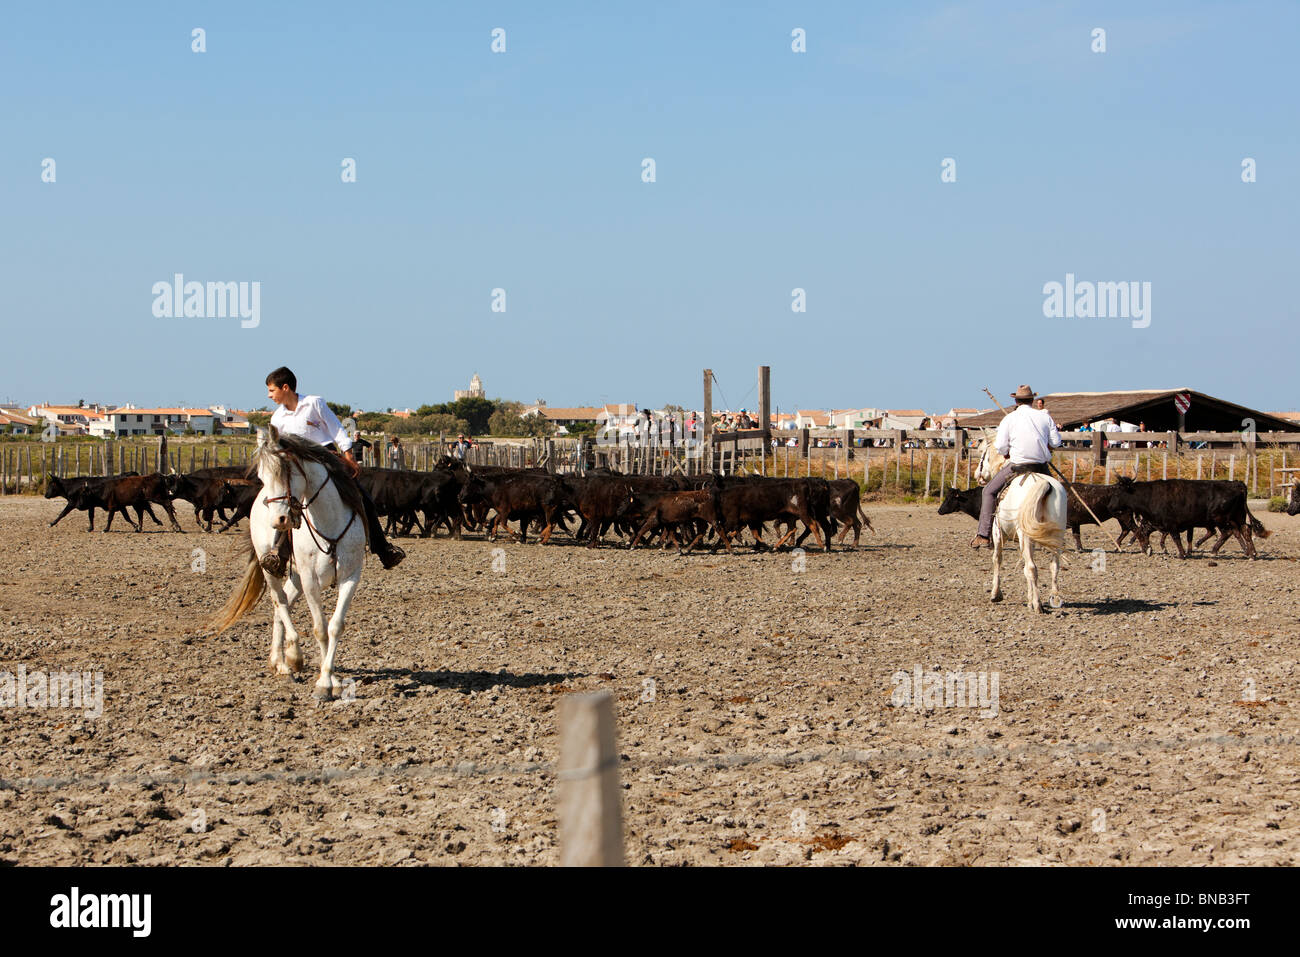 Gardians, the cowboys of the Camargue region, separating bulls from the herd for the next bullfighting - Stock Image